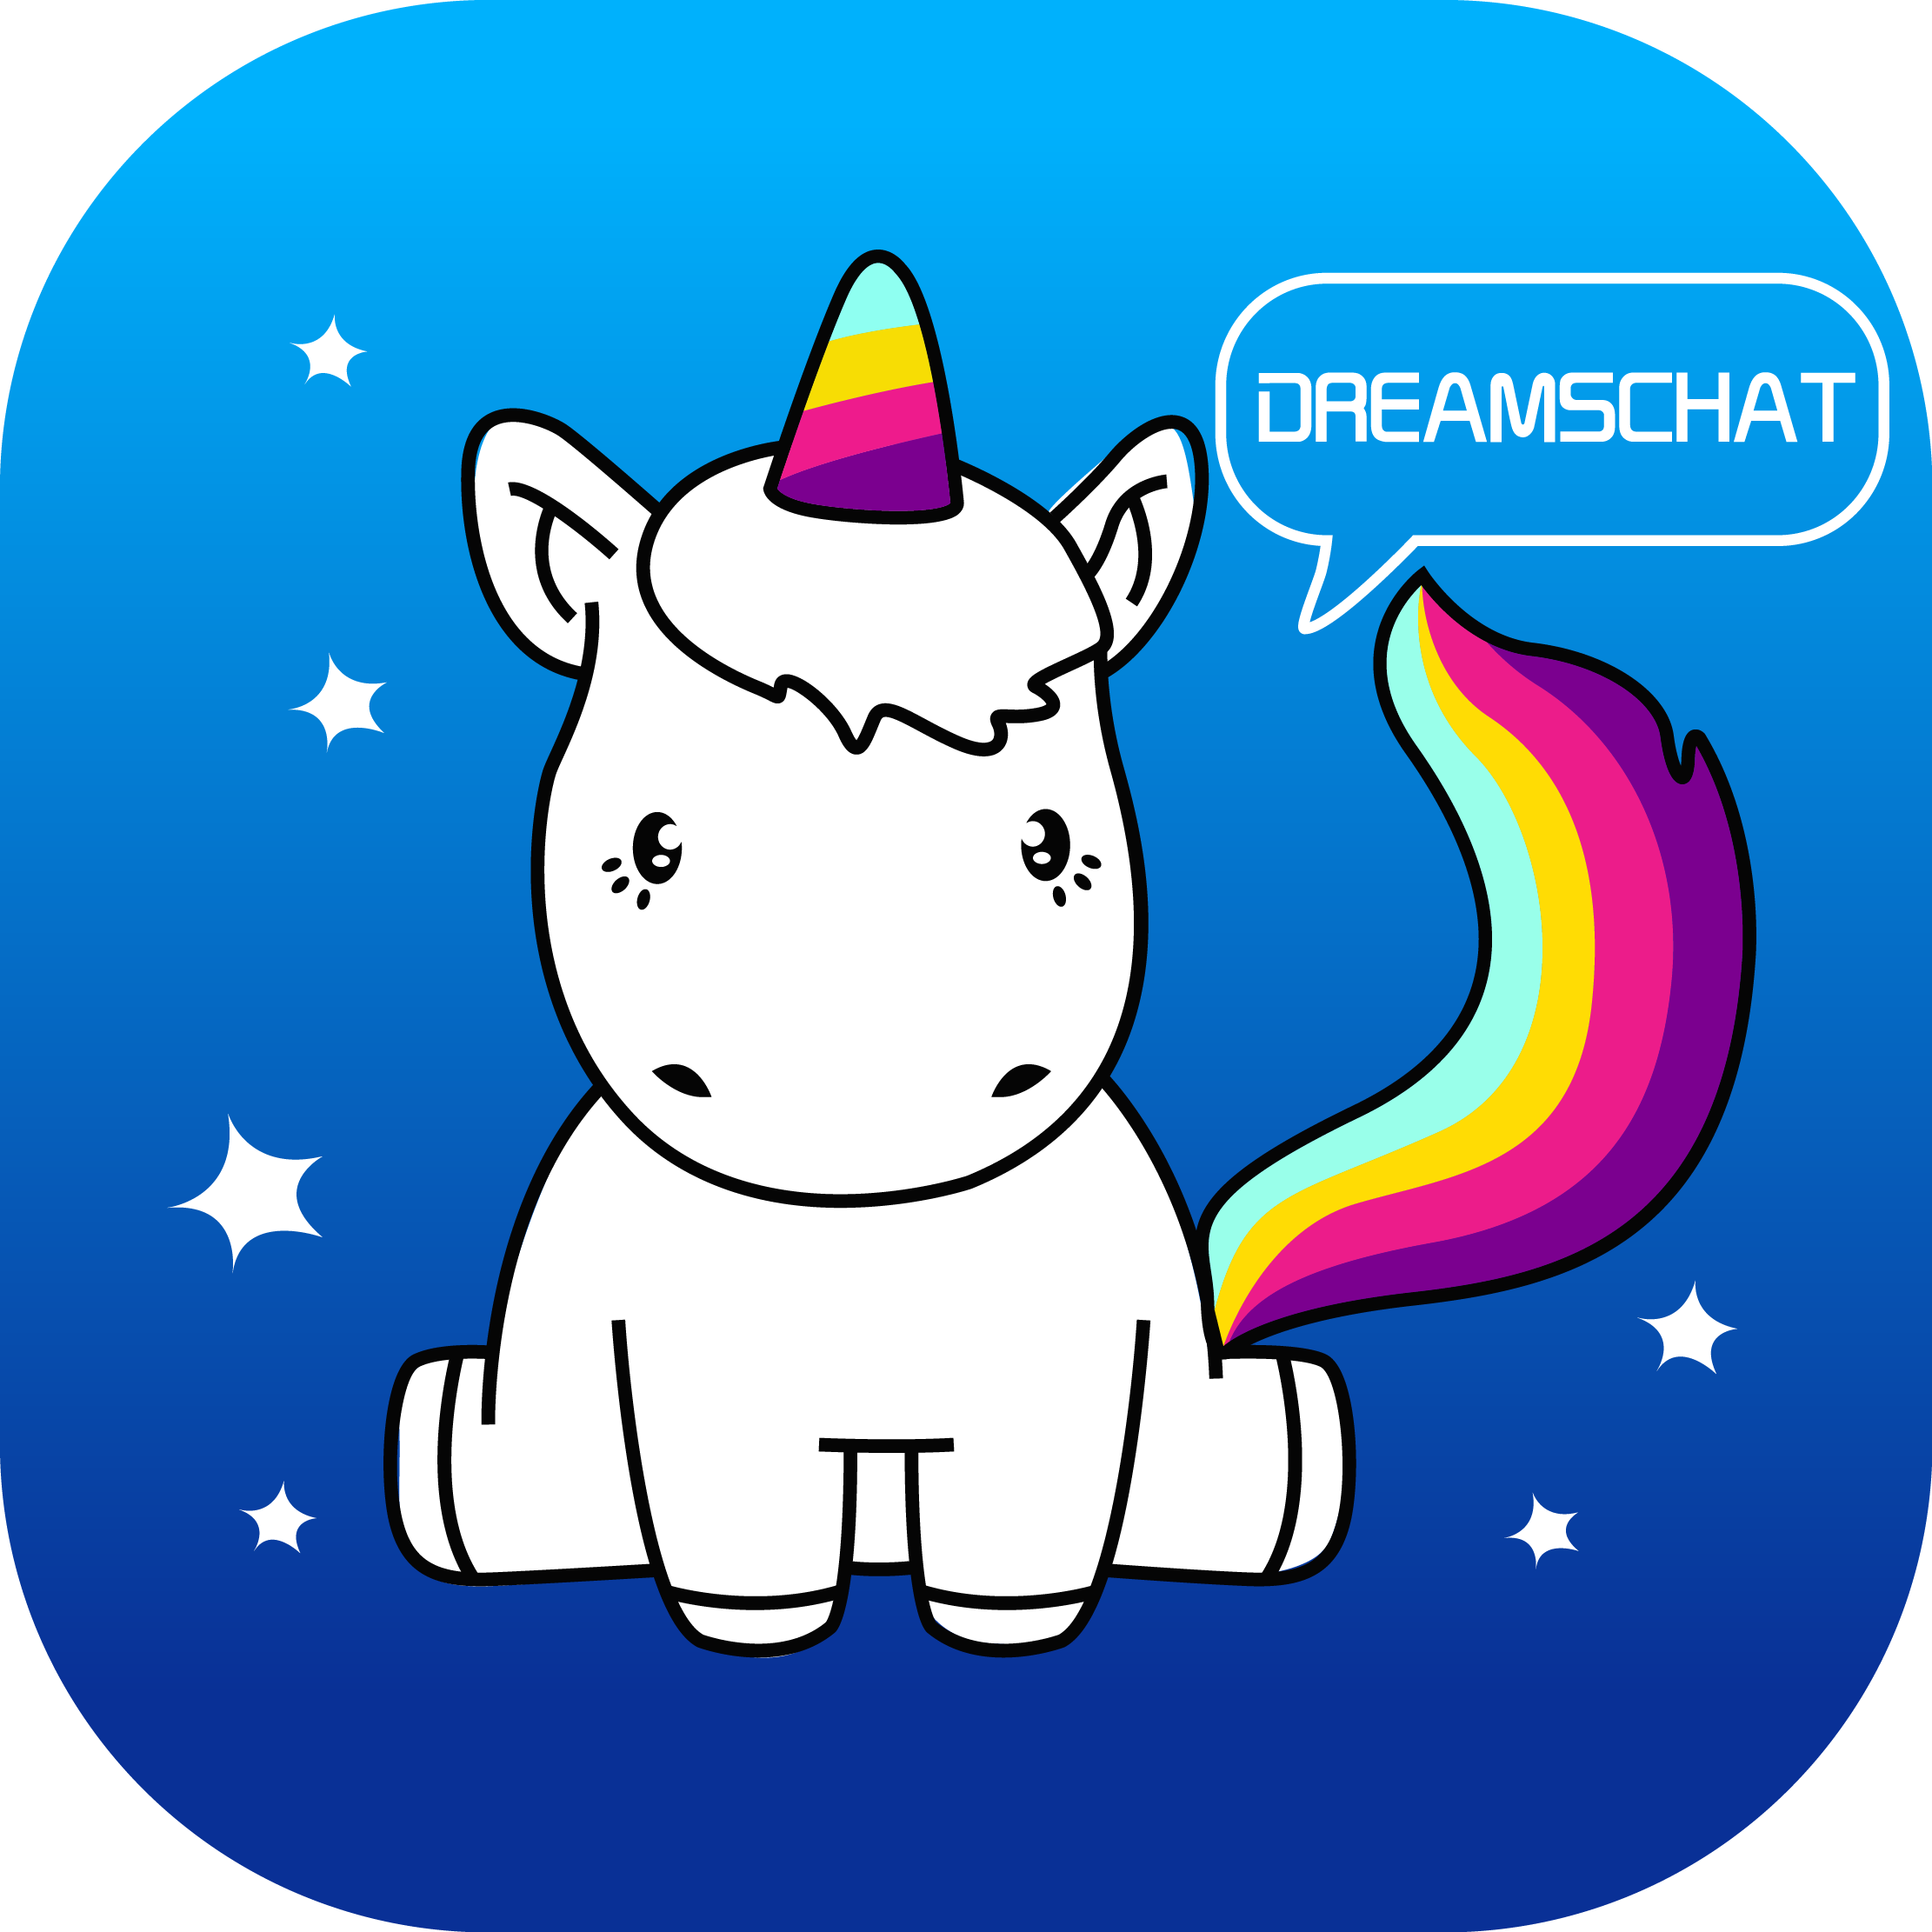 DreamsChat